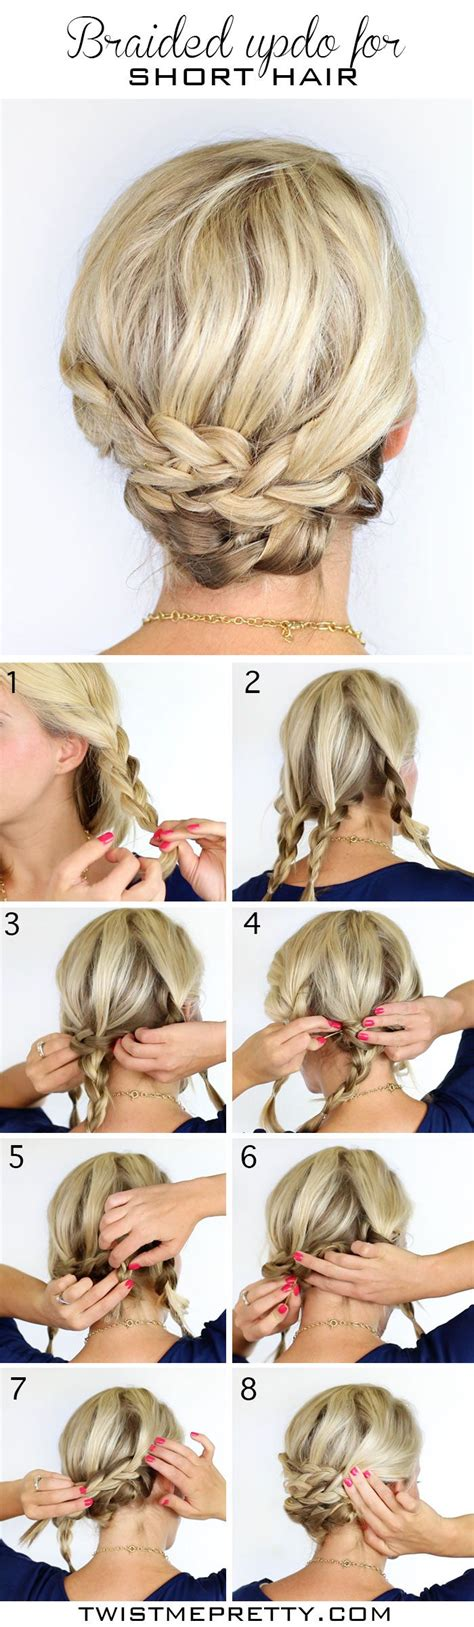 hairstyles braids for short hair 12 pretty braided hairstyles for short hair pretty designs